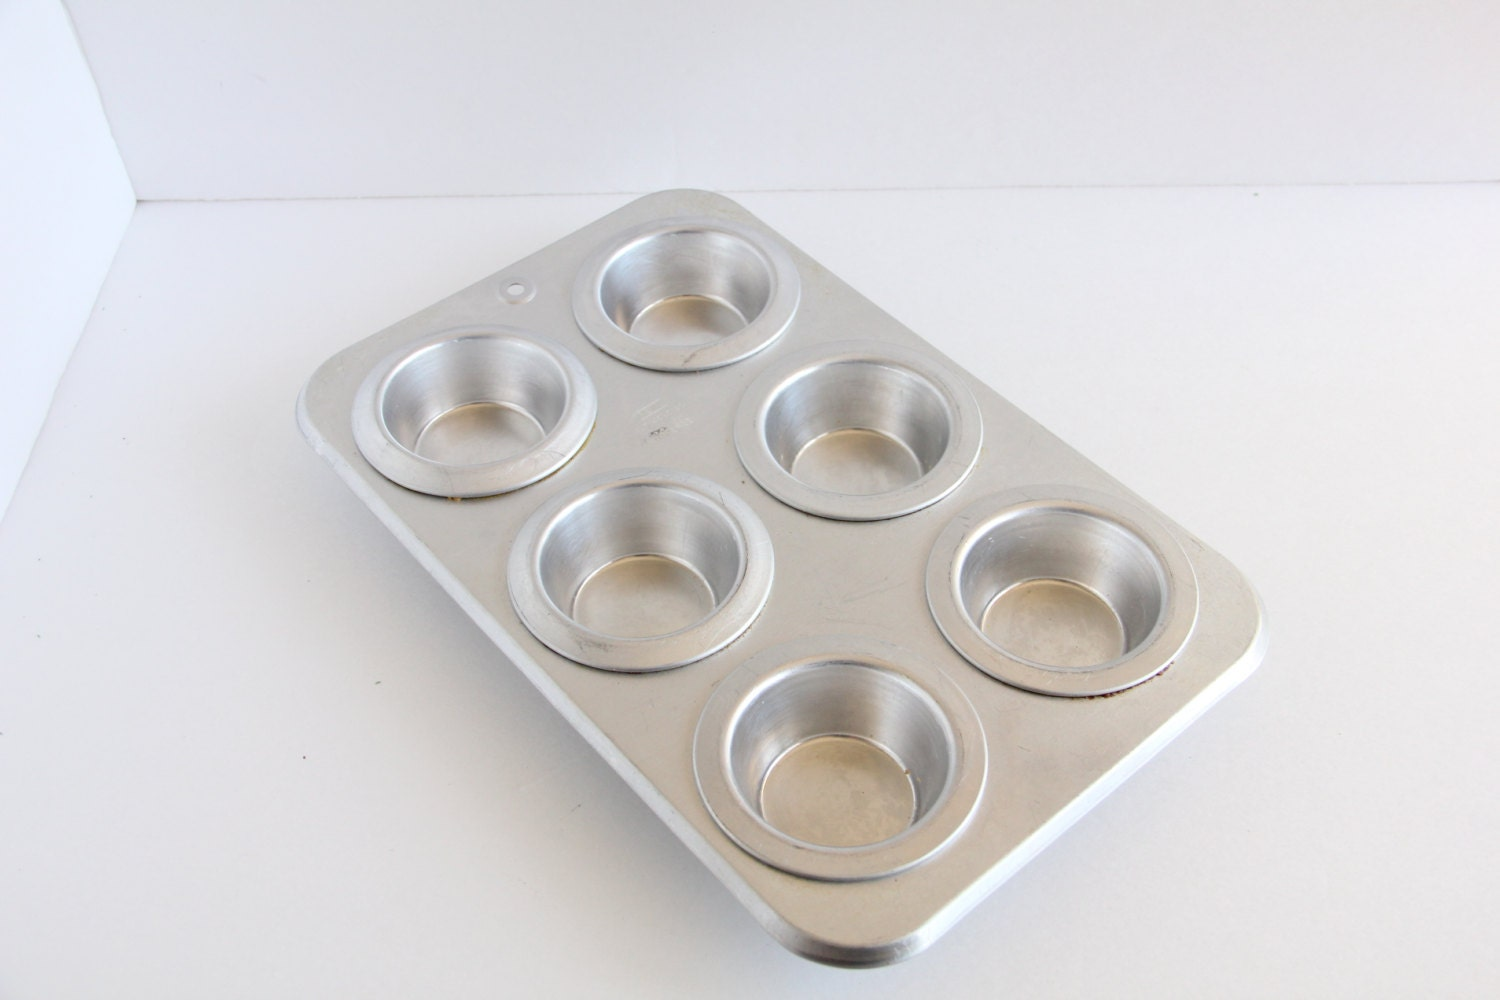 Rema Airbake Cupcake Pan Insulated Muffin By